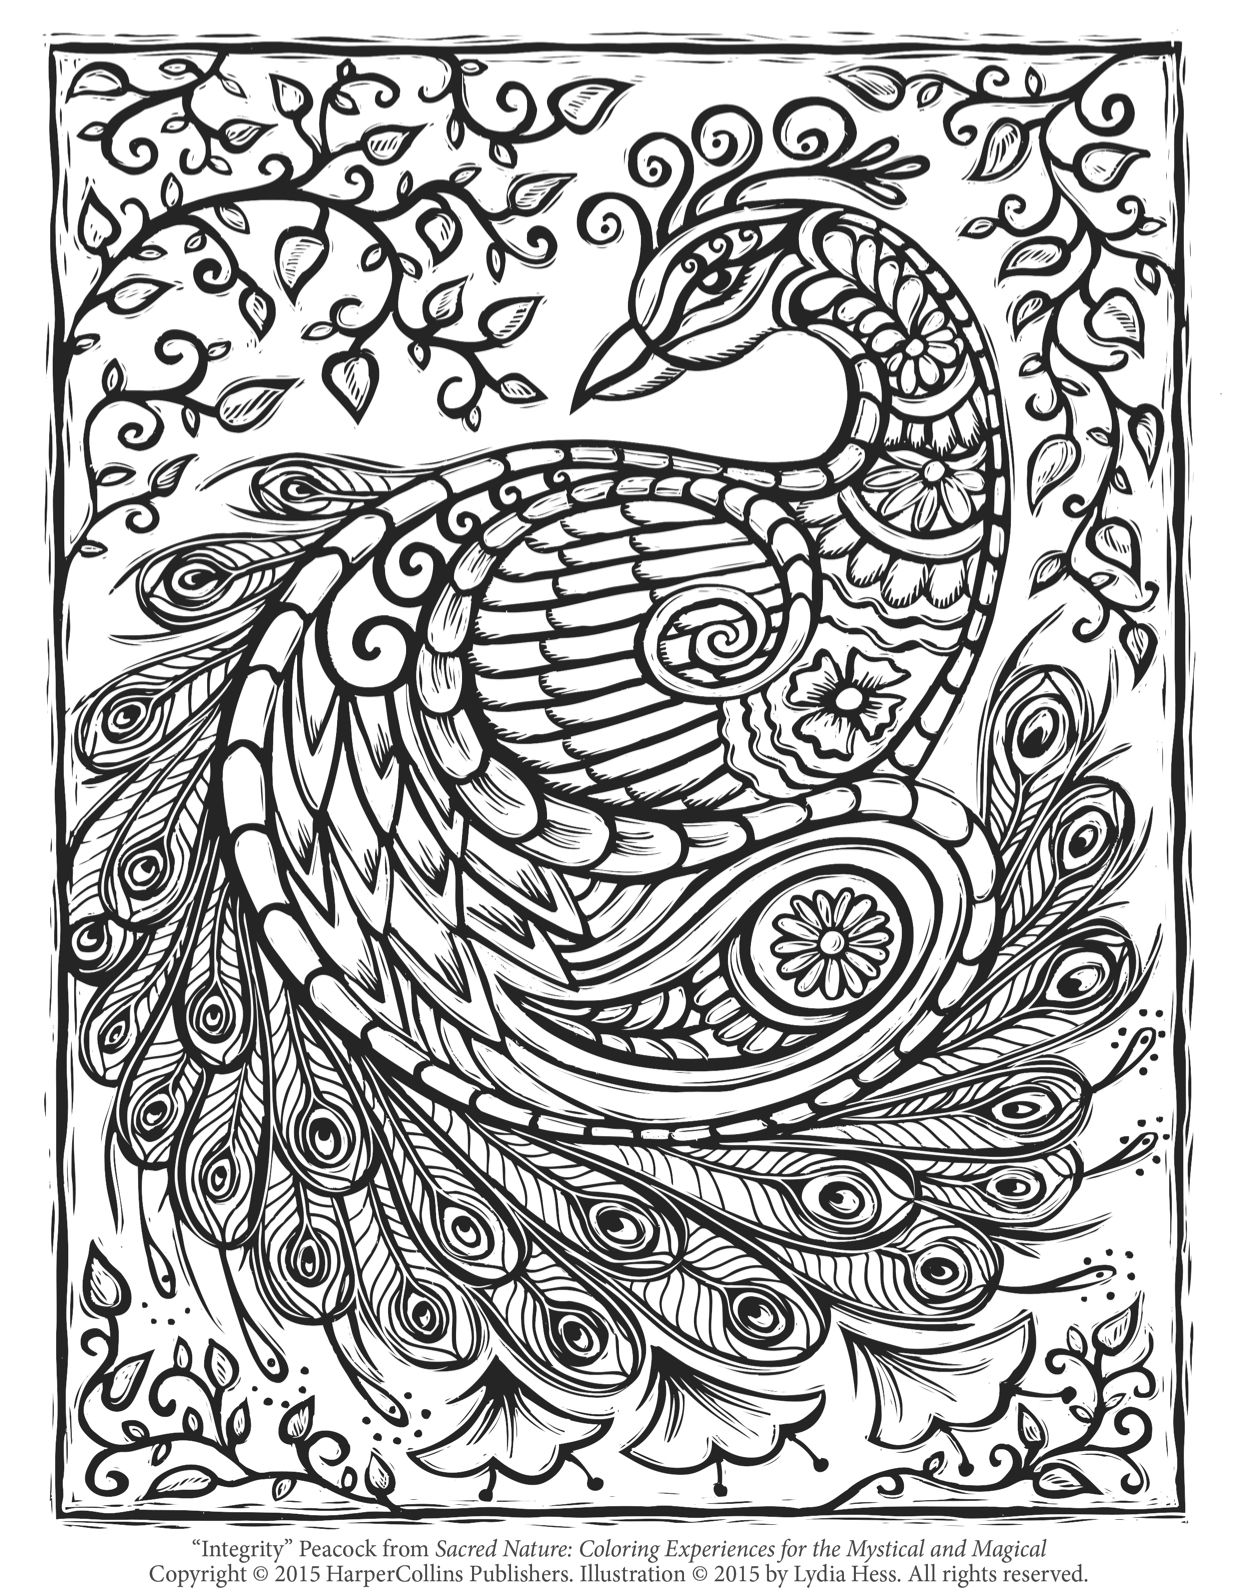 peacock coloring pages for adults peacock coloring pages to download and print for free peacock coloring pages for adults